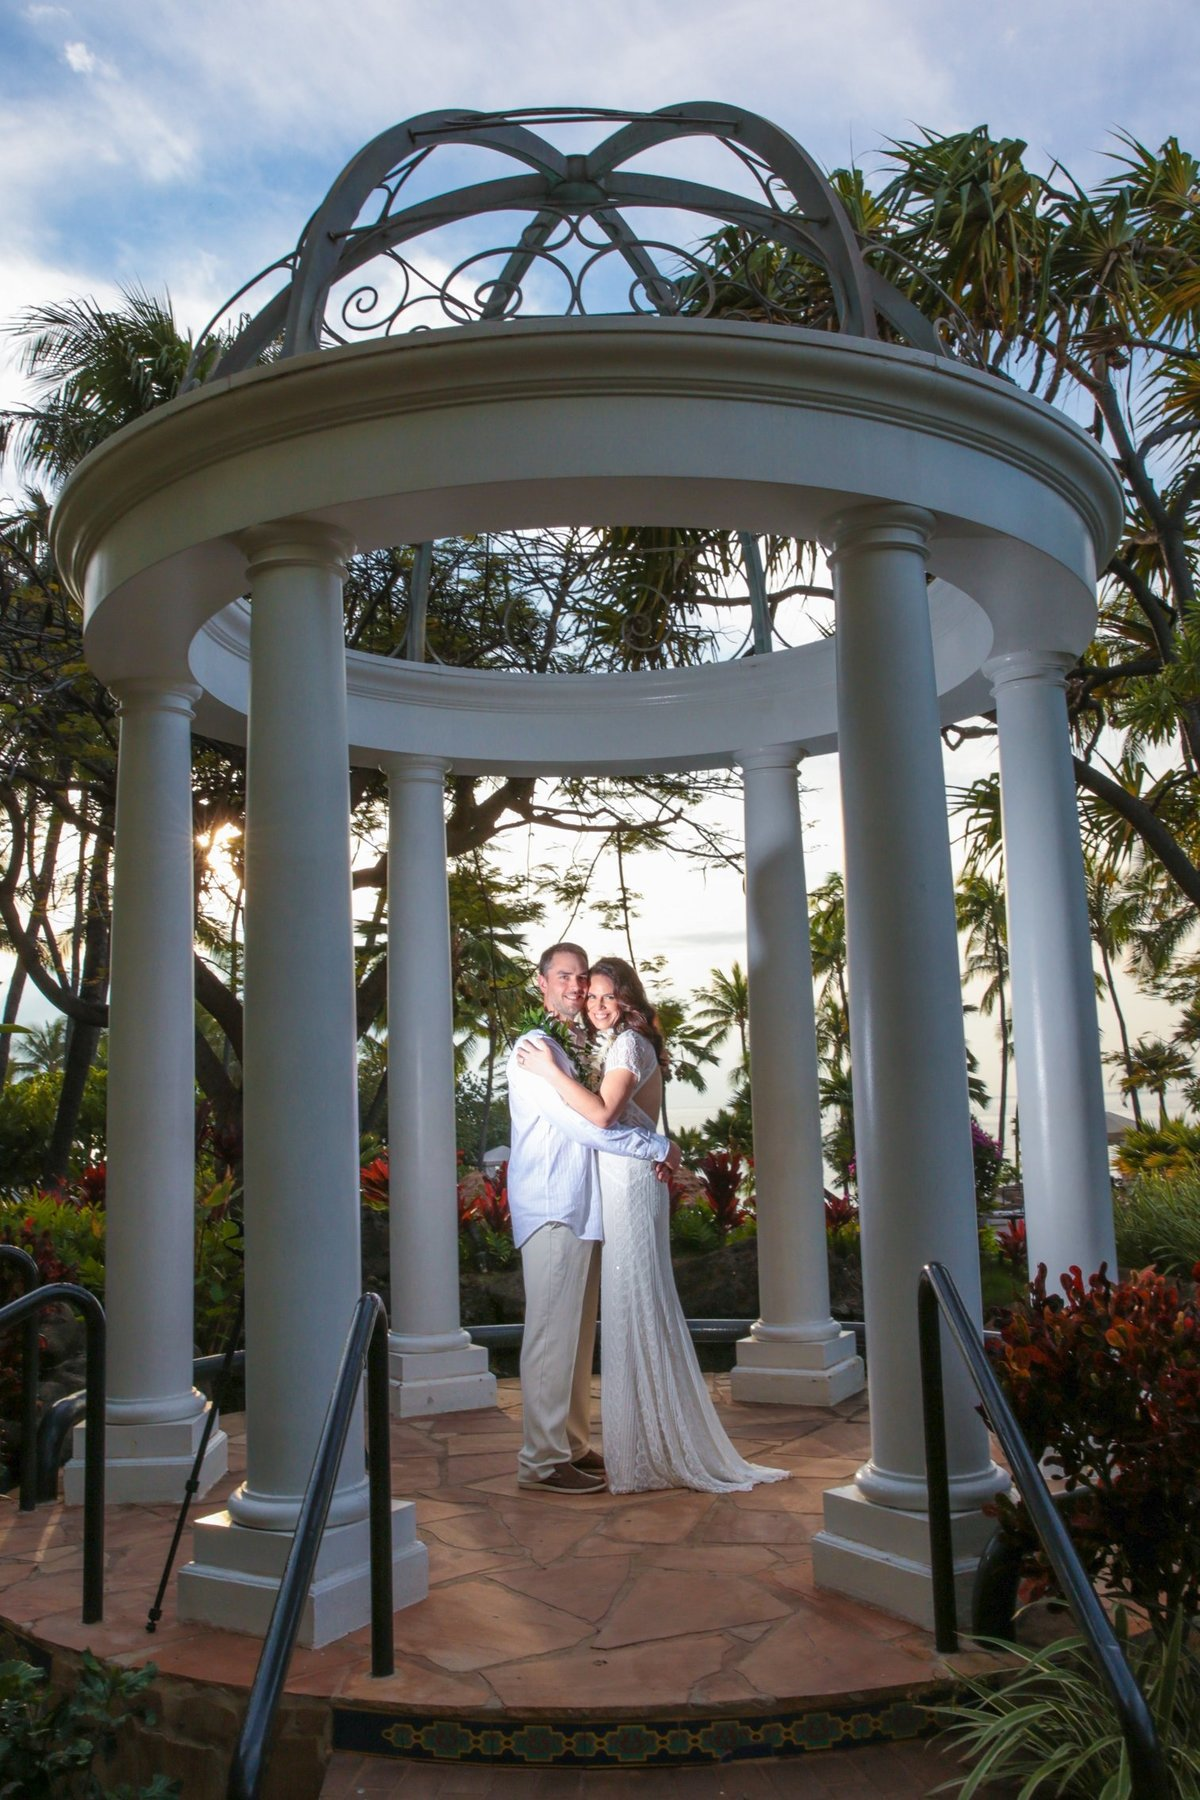 Maui Wedding Photography   at The Westin Maui Resort and Spa  with the bride and groom at sunset in the wedding gazebo